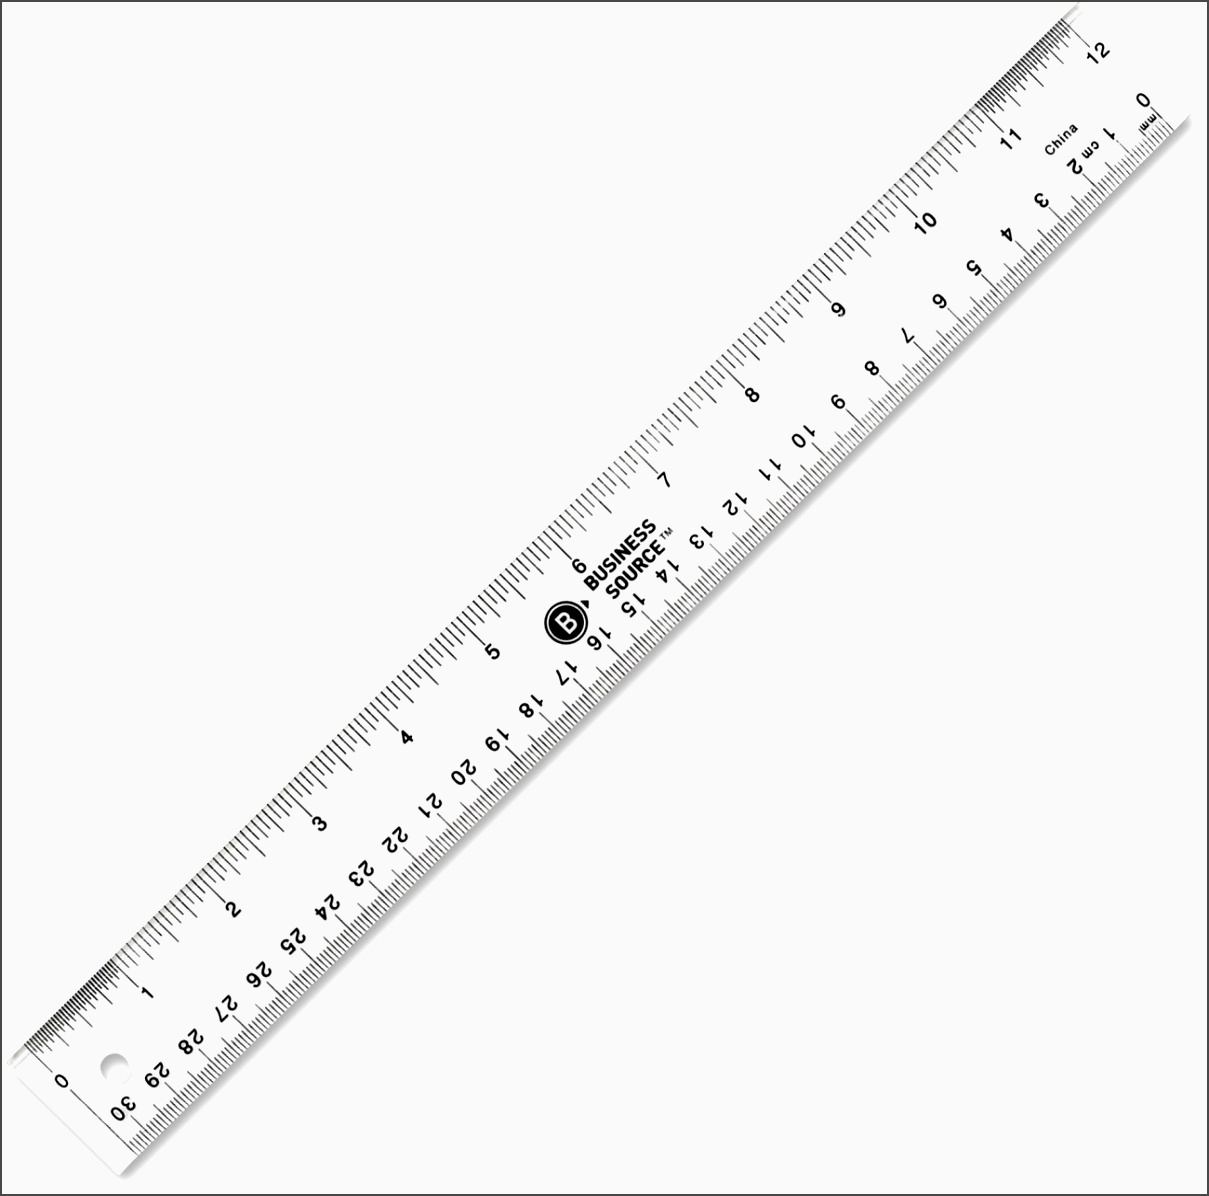 69 Free Printable Rulers | Kittybabylove - Free Printable Cm Ruler